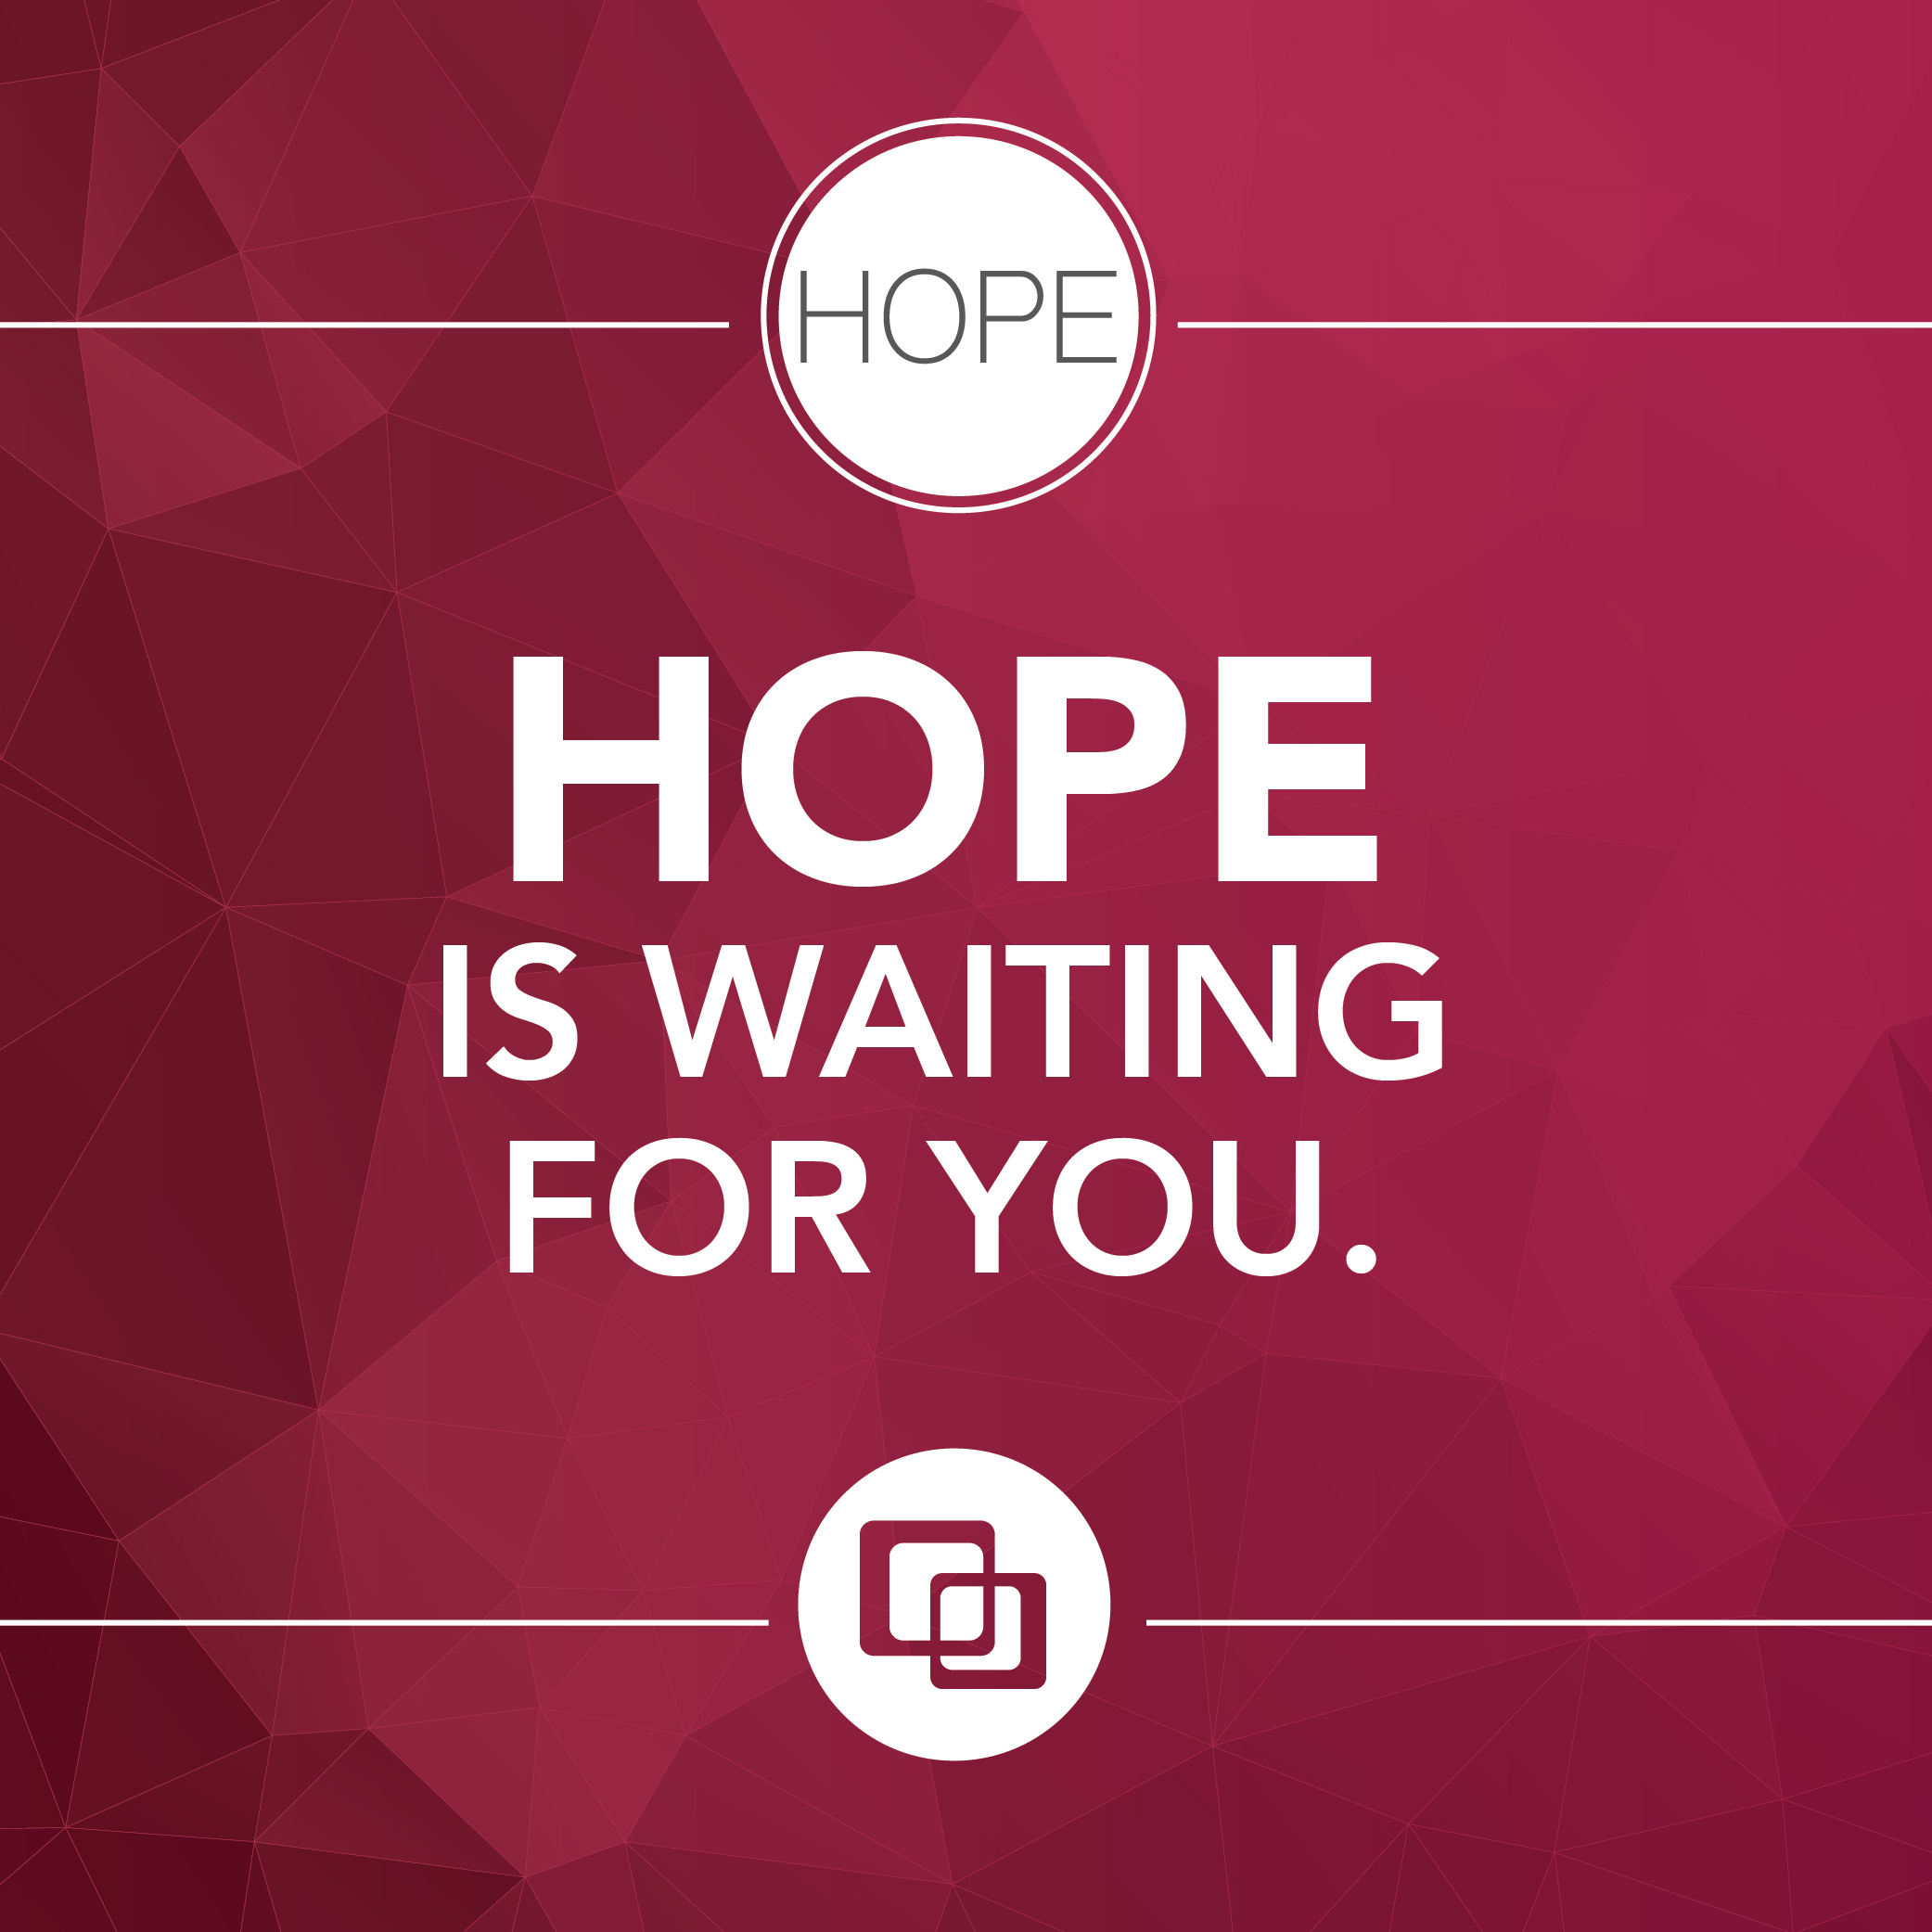 Hope is waiting for you.